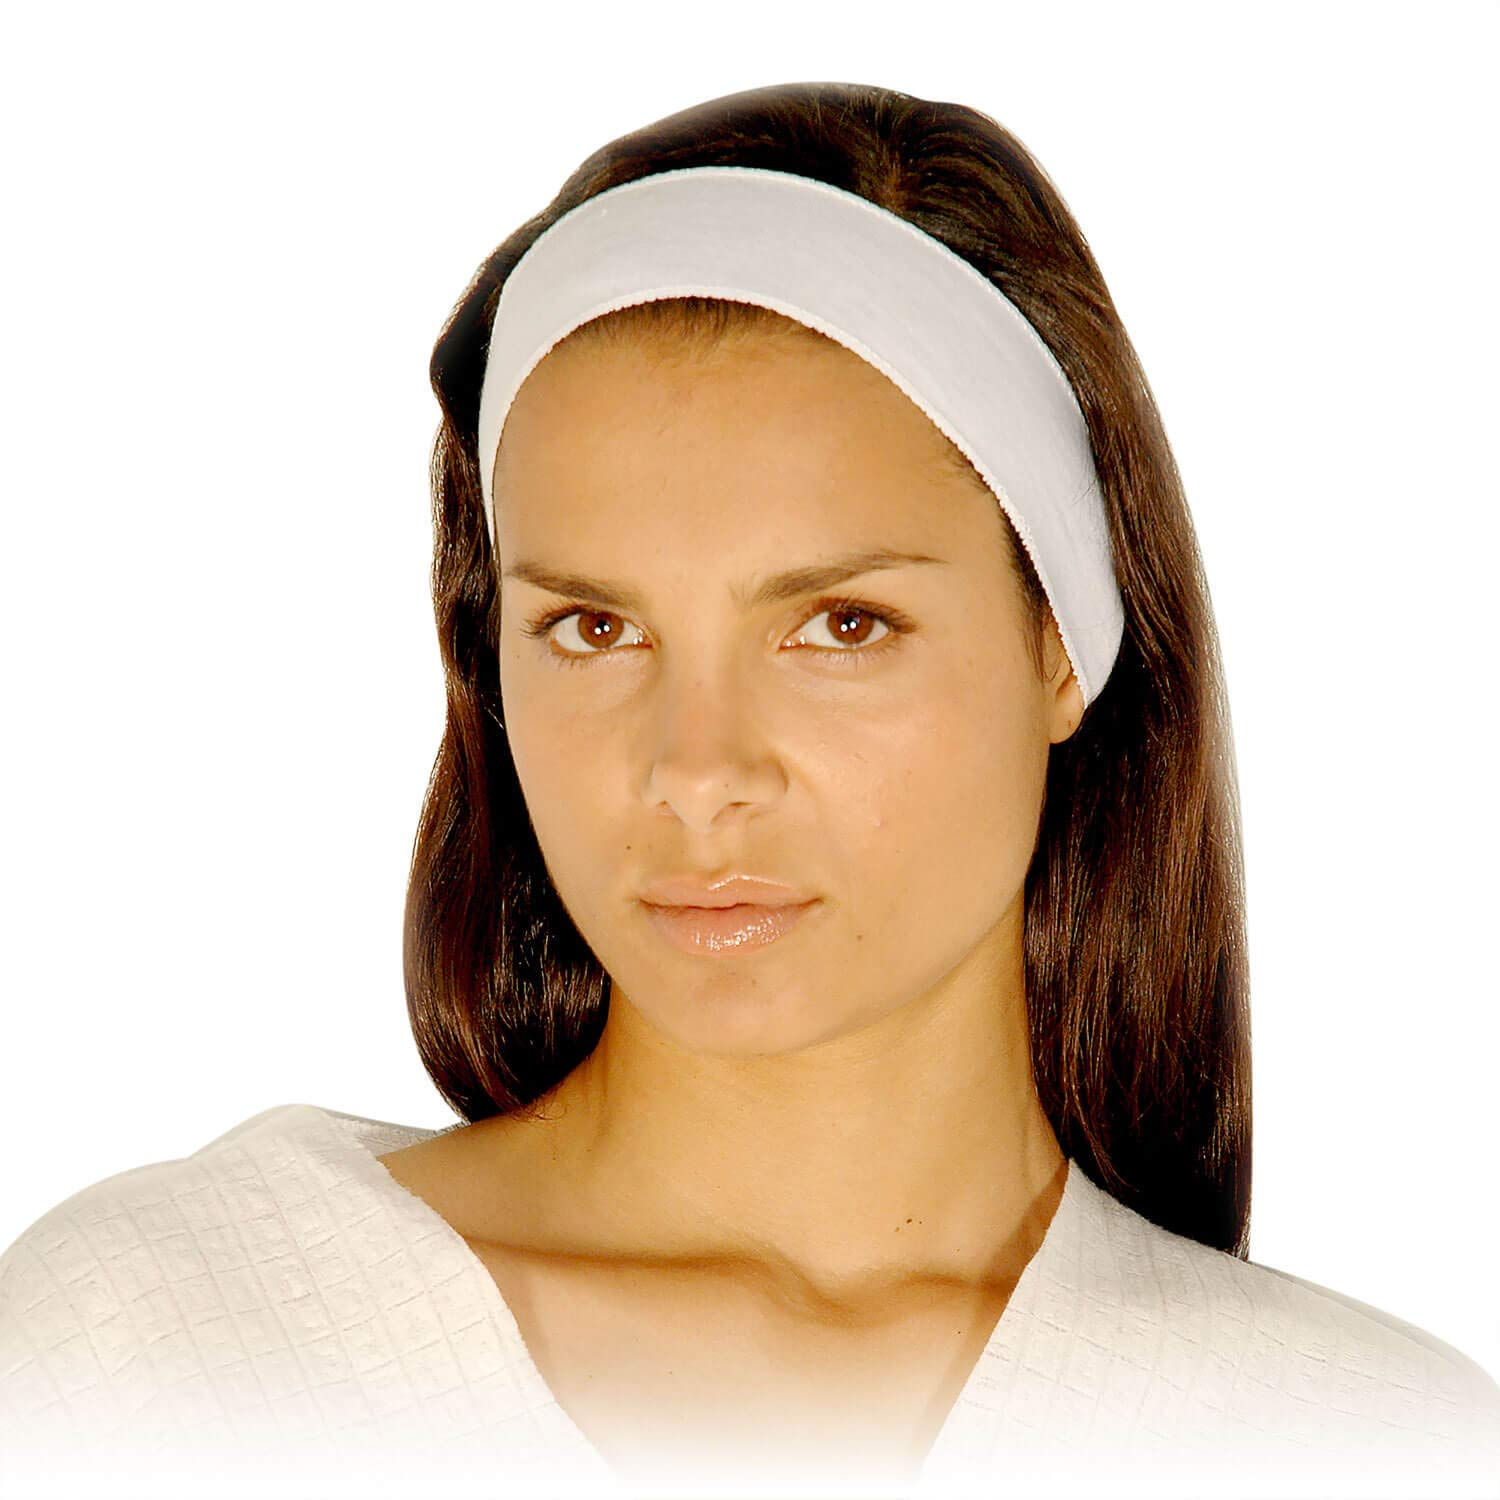 Appearus Disposable Facial Spa Headband - Stretch Cotton Cloth (480 count / AH1051x10) by Appearus